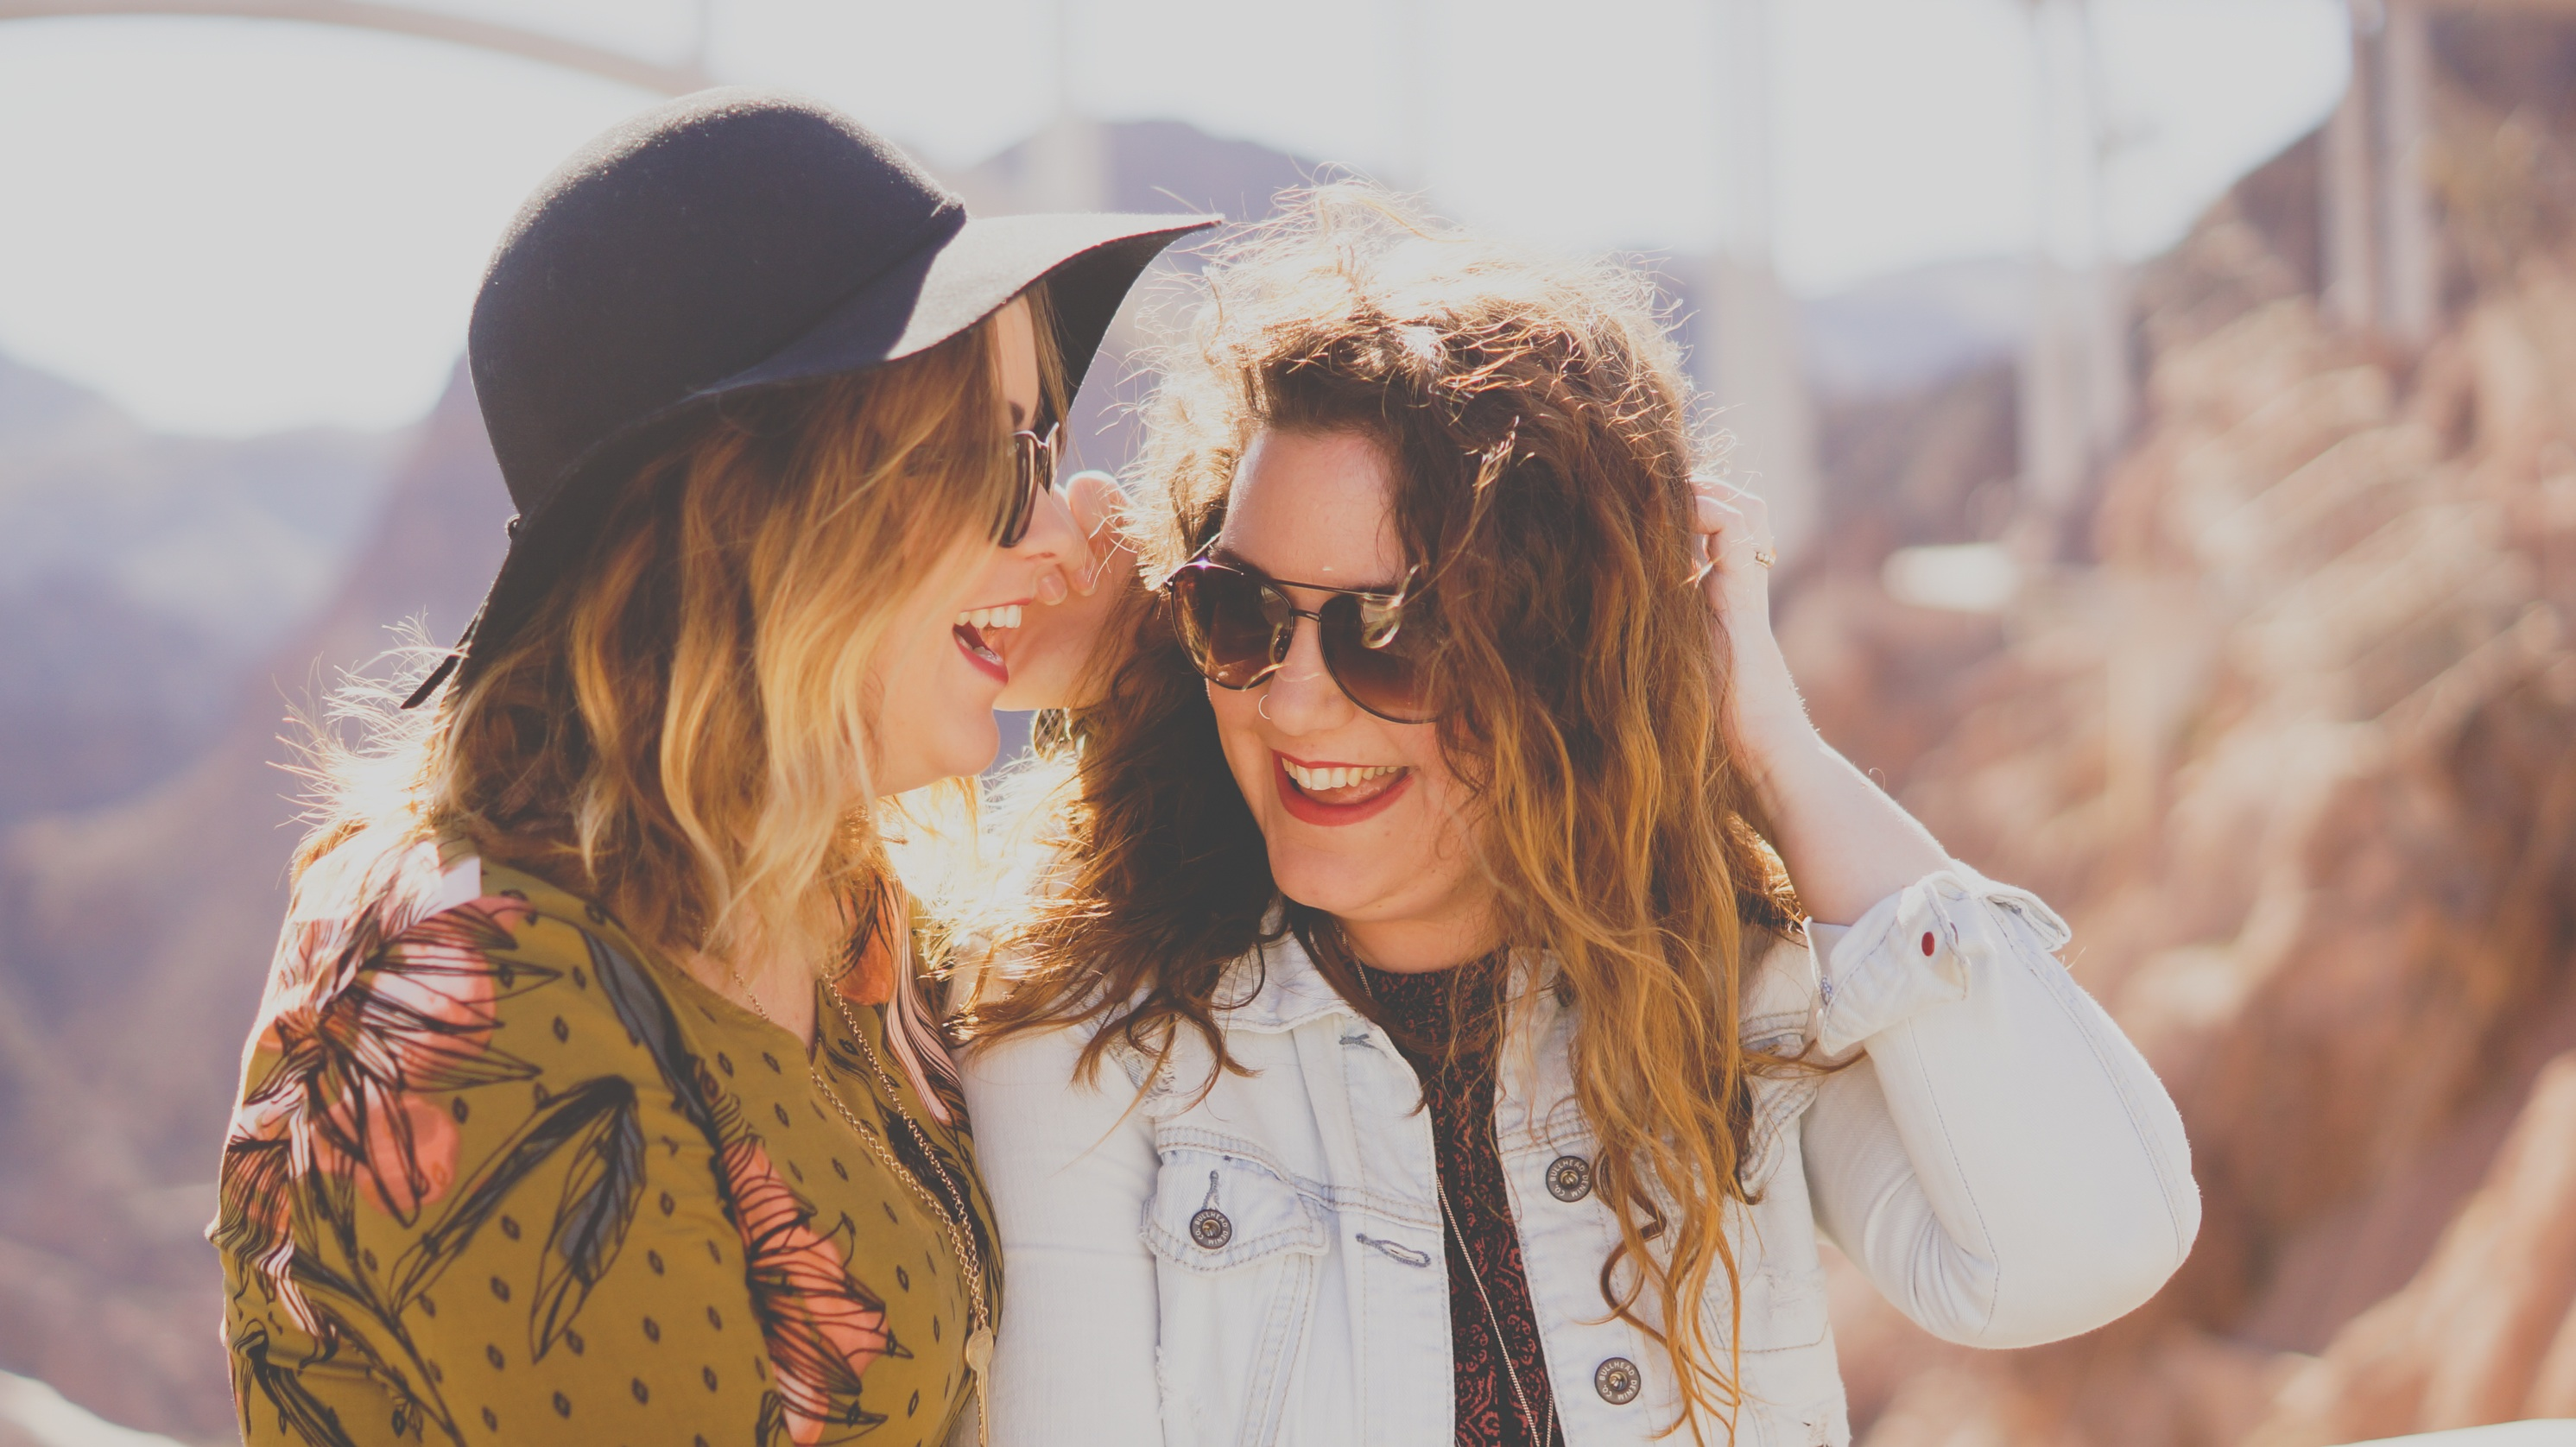 Two woman laughing blurry background